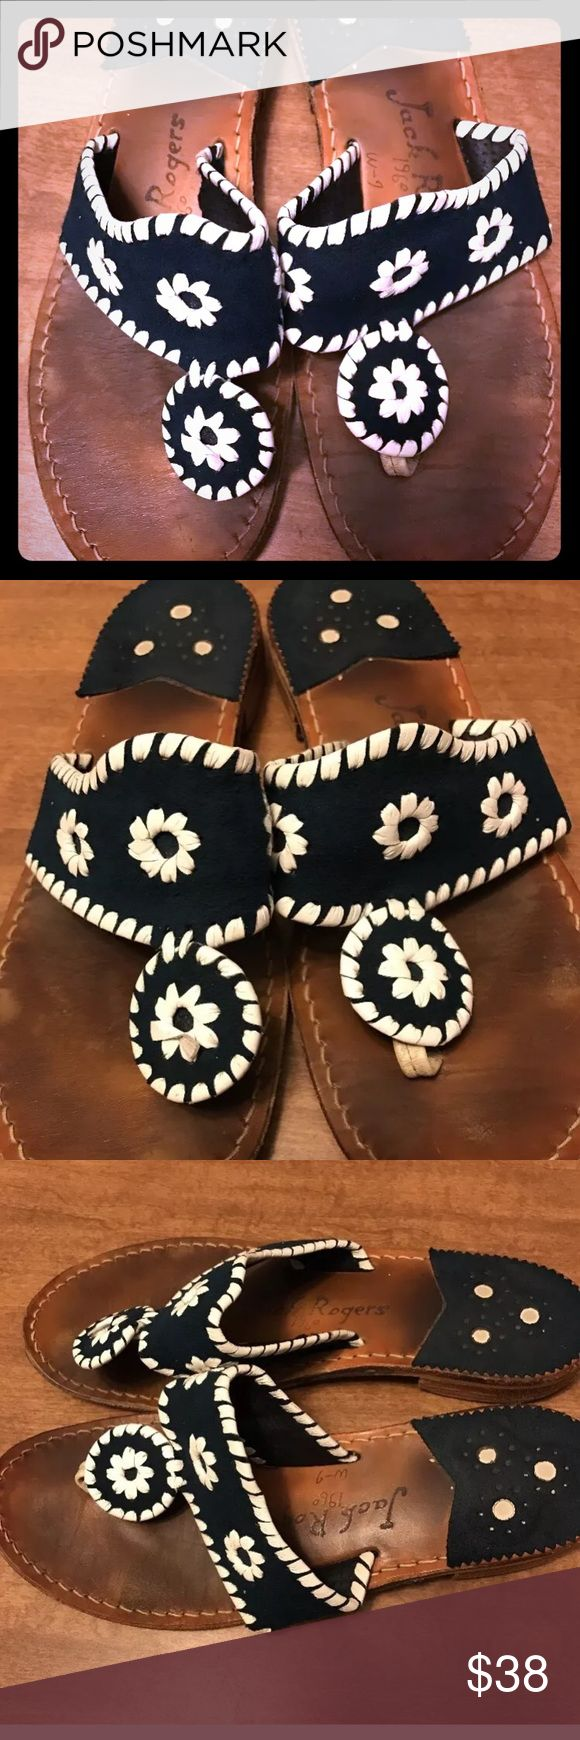 Jack Rogers  navy blue white sandals sz 6 Signs of Wear shown in pictures still great condition Jack Rogers Shoes Sandals